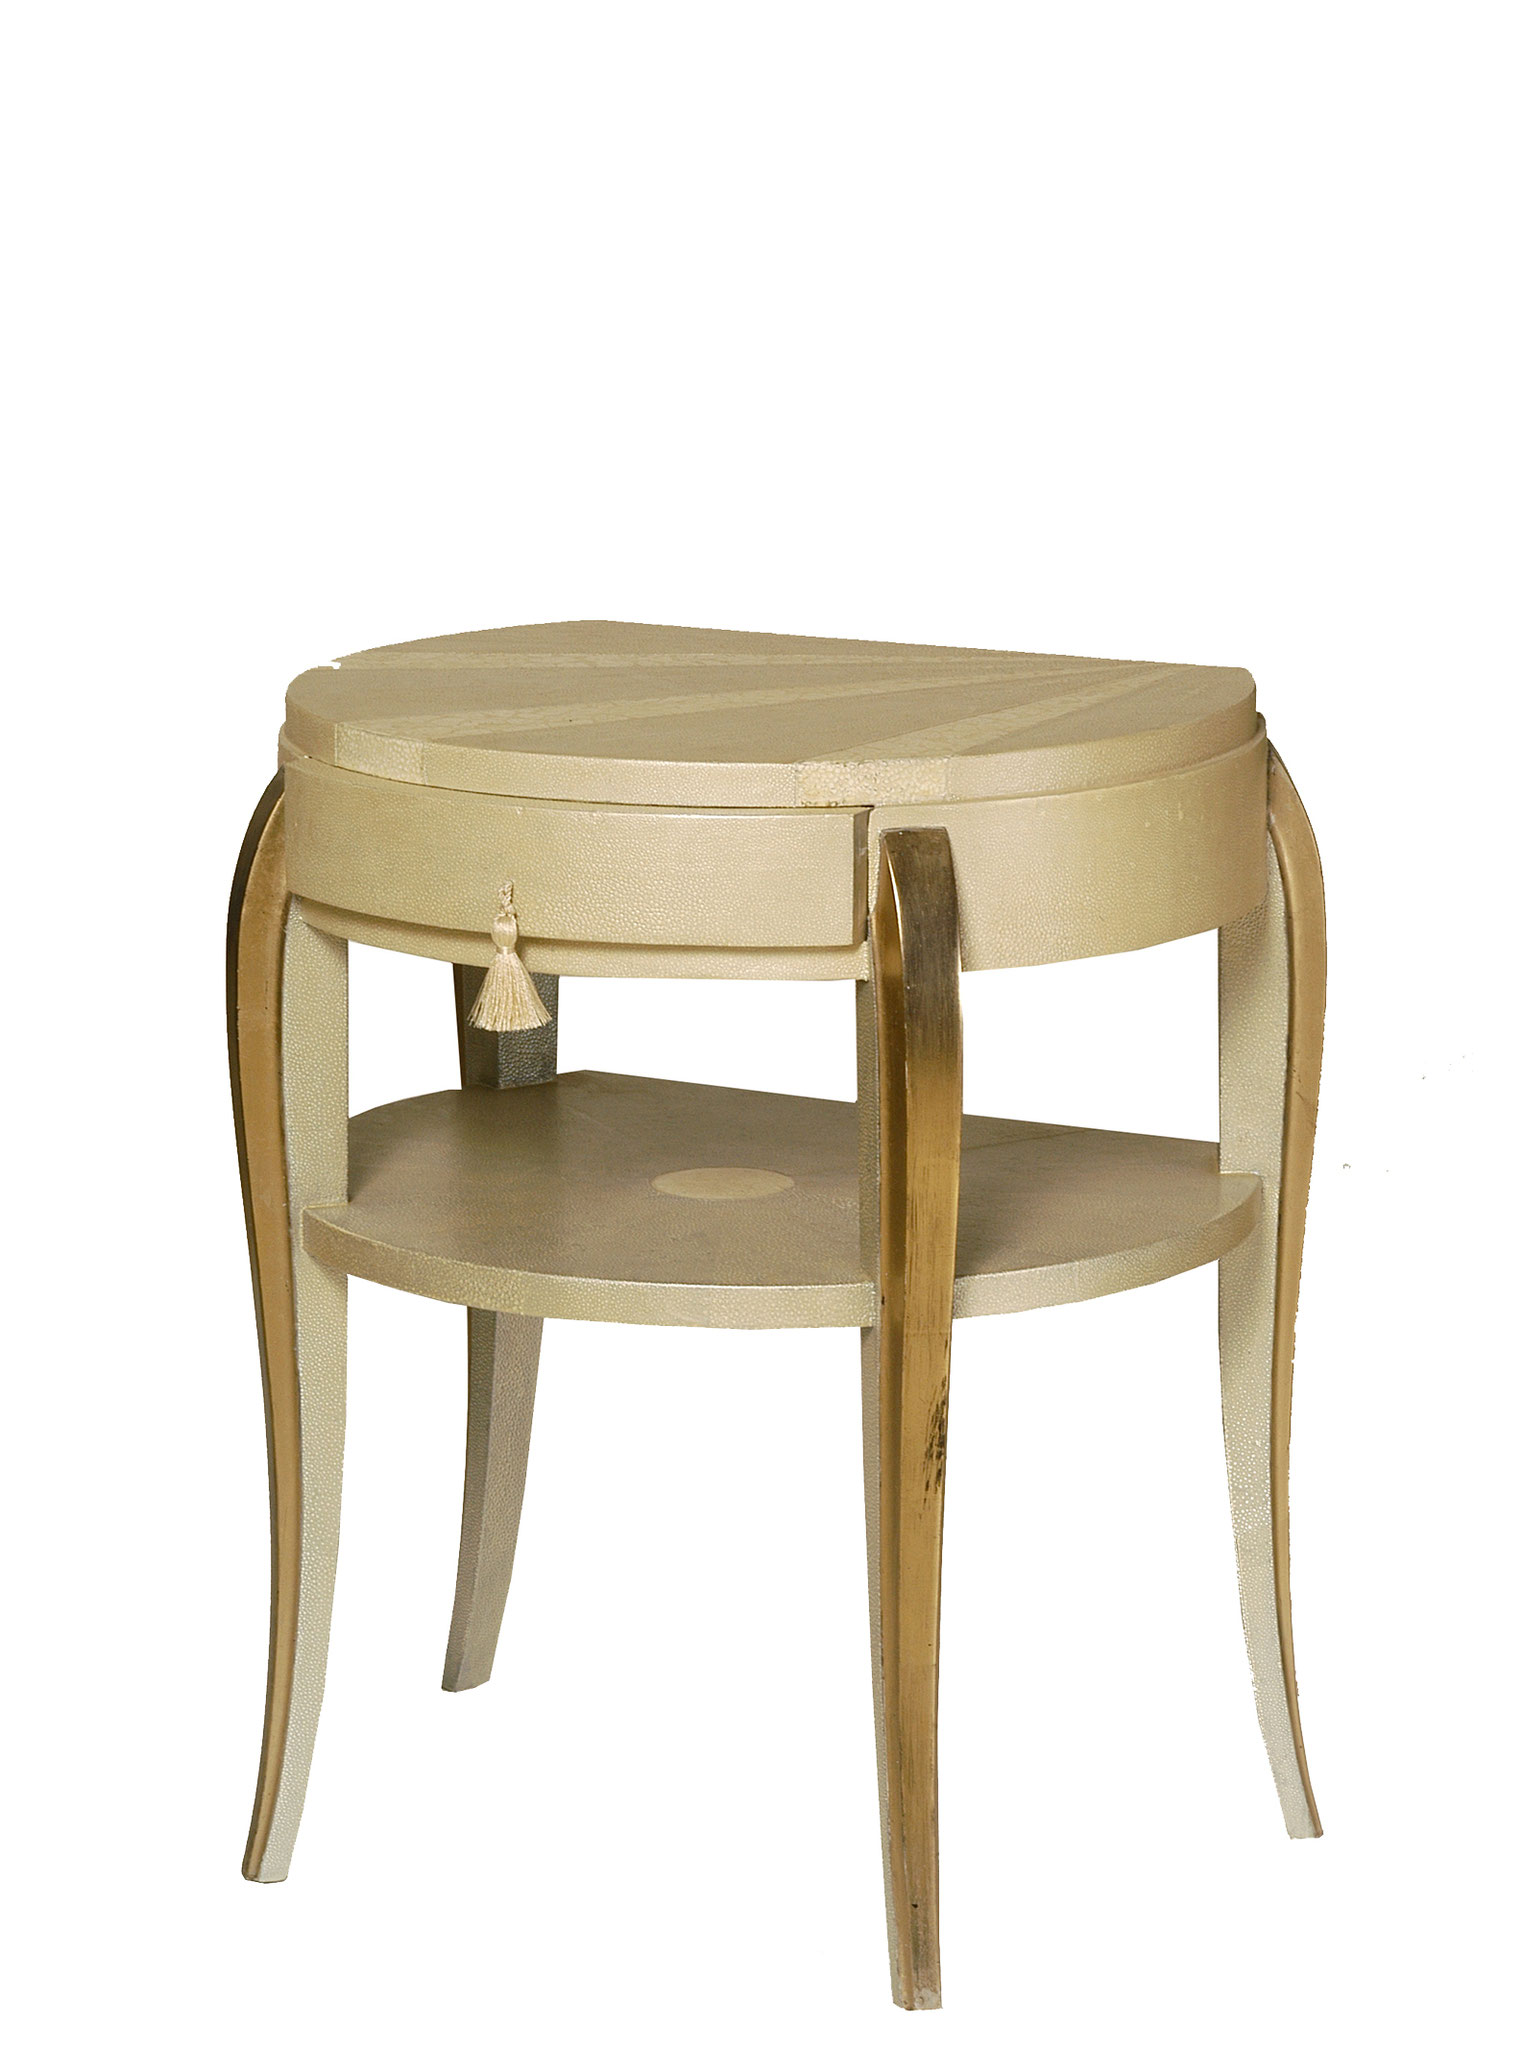 Bedside table lacquered with faux-shagreen, eggshells inlays & gold leaves - Vintage piece from the 1940's - 57 x 46 x 40 cm